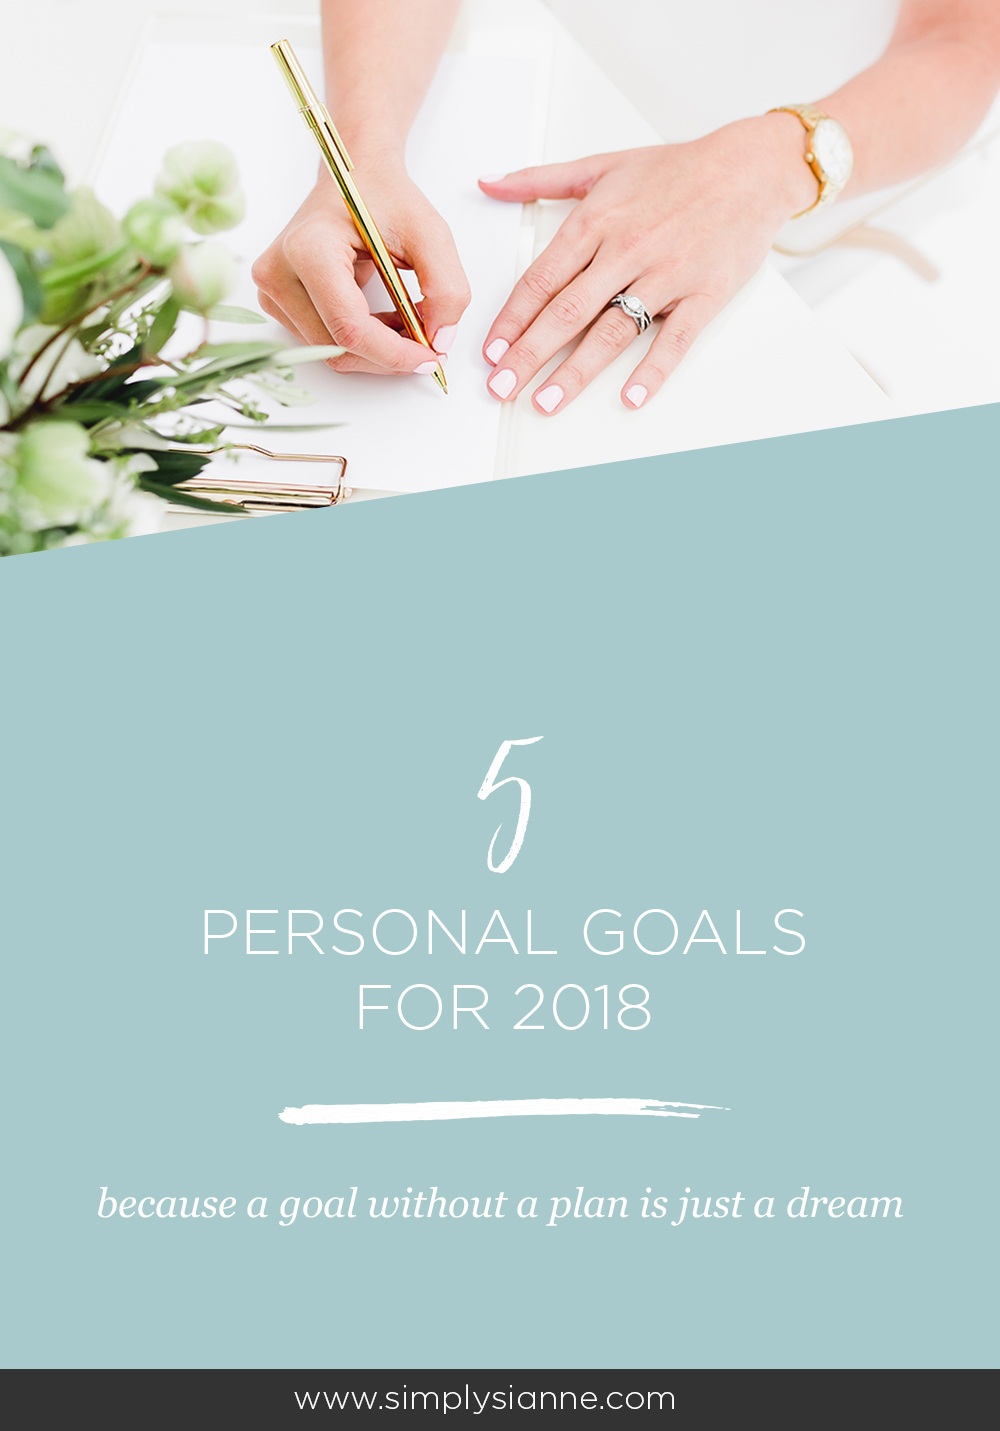 Breaking up my goals for 2018 into two parts: personal and business. I'm sharing my 5 personal goals in today's post, focusing on growth, our home, and travel. Click to see what they are.